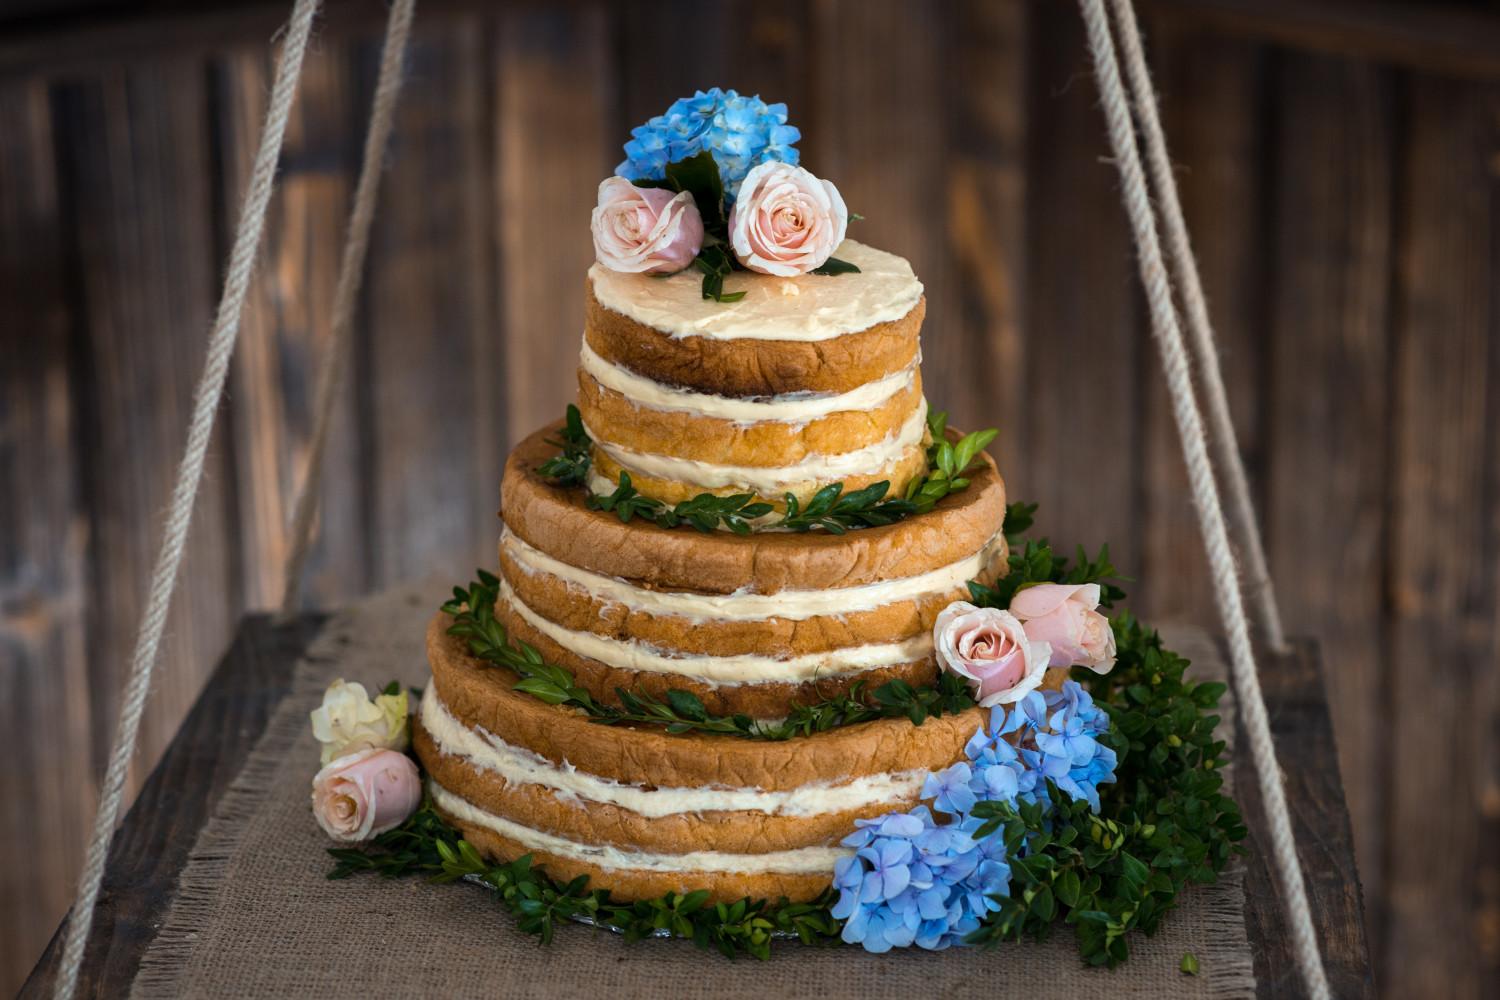 The Naked Wedding Cake: Should Yours Take It All Off?